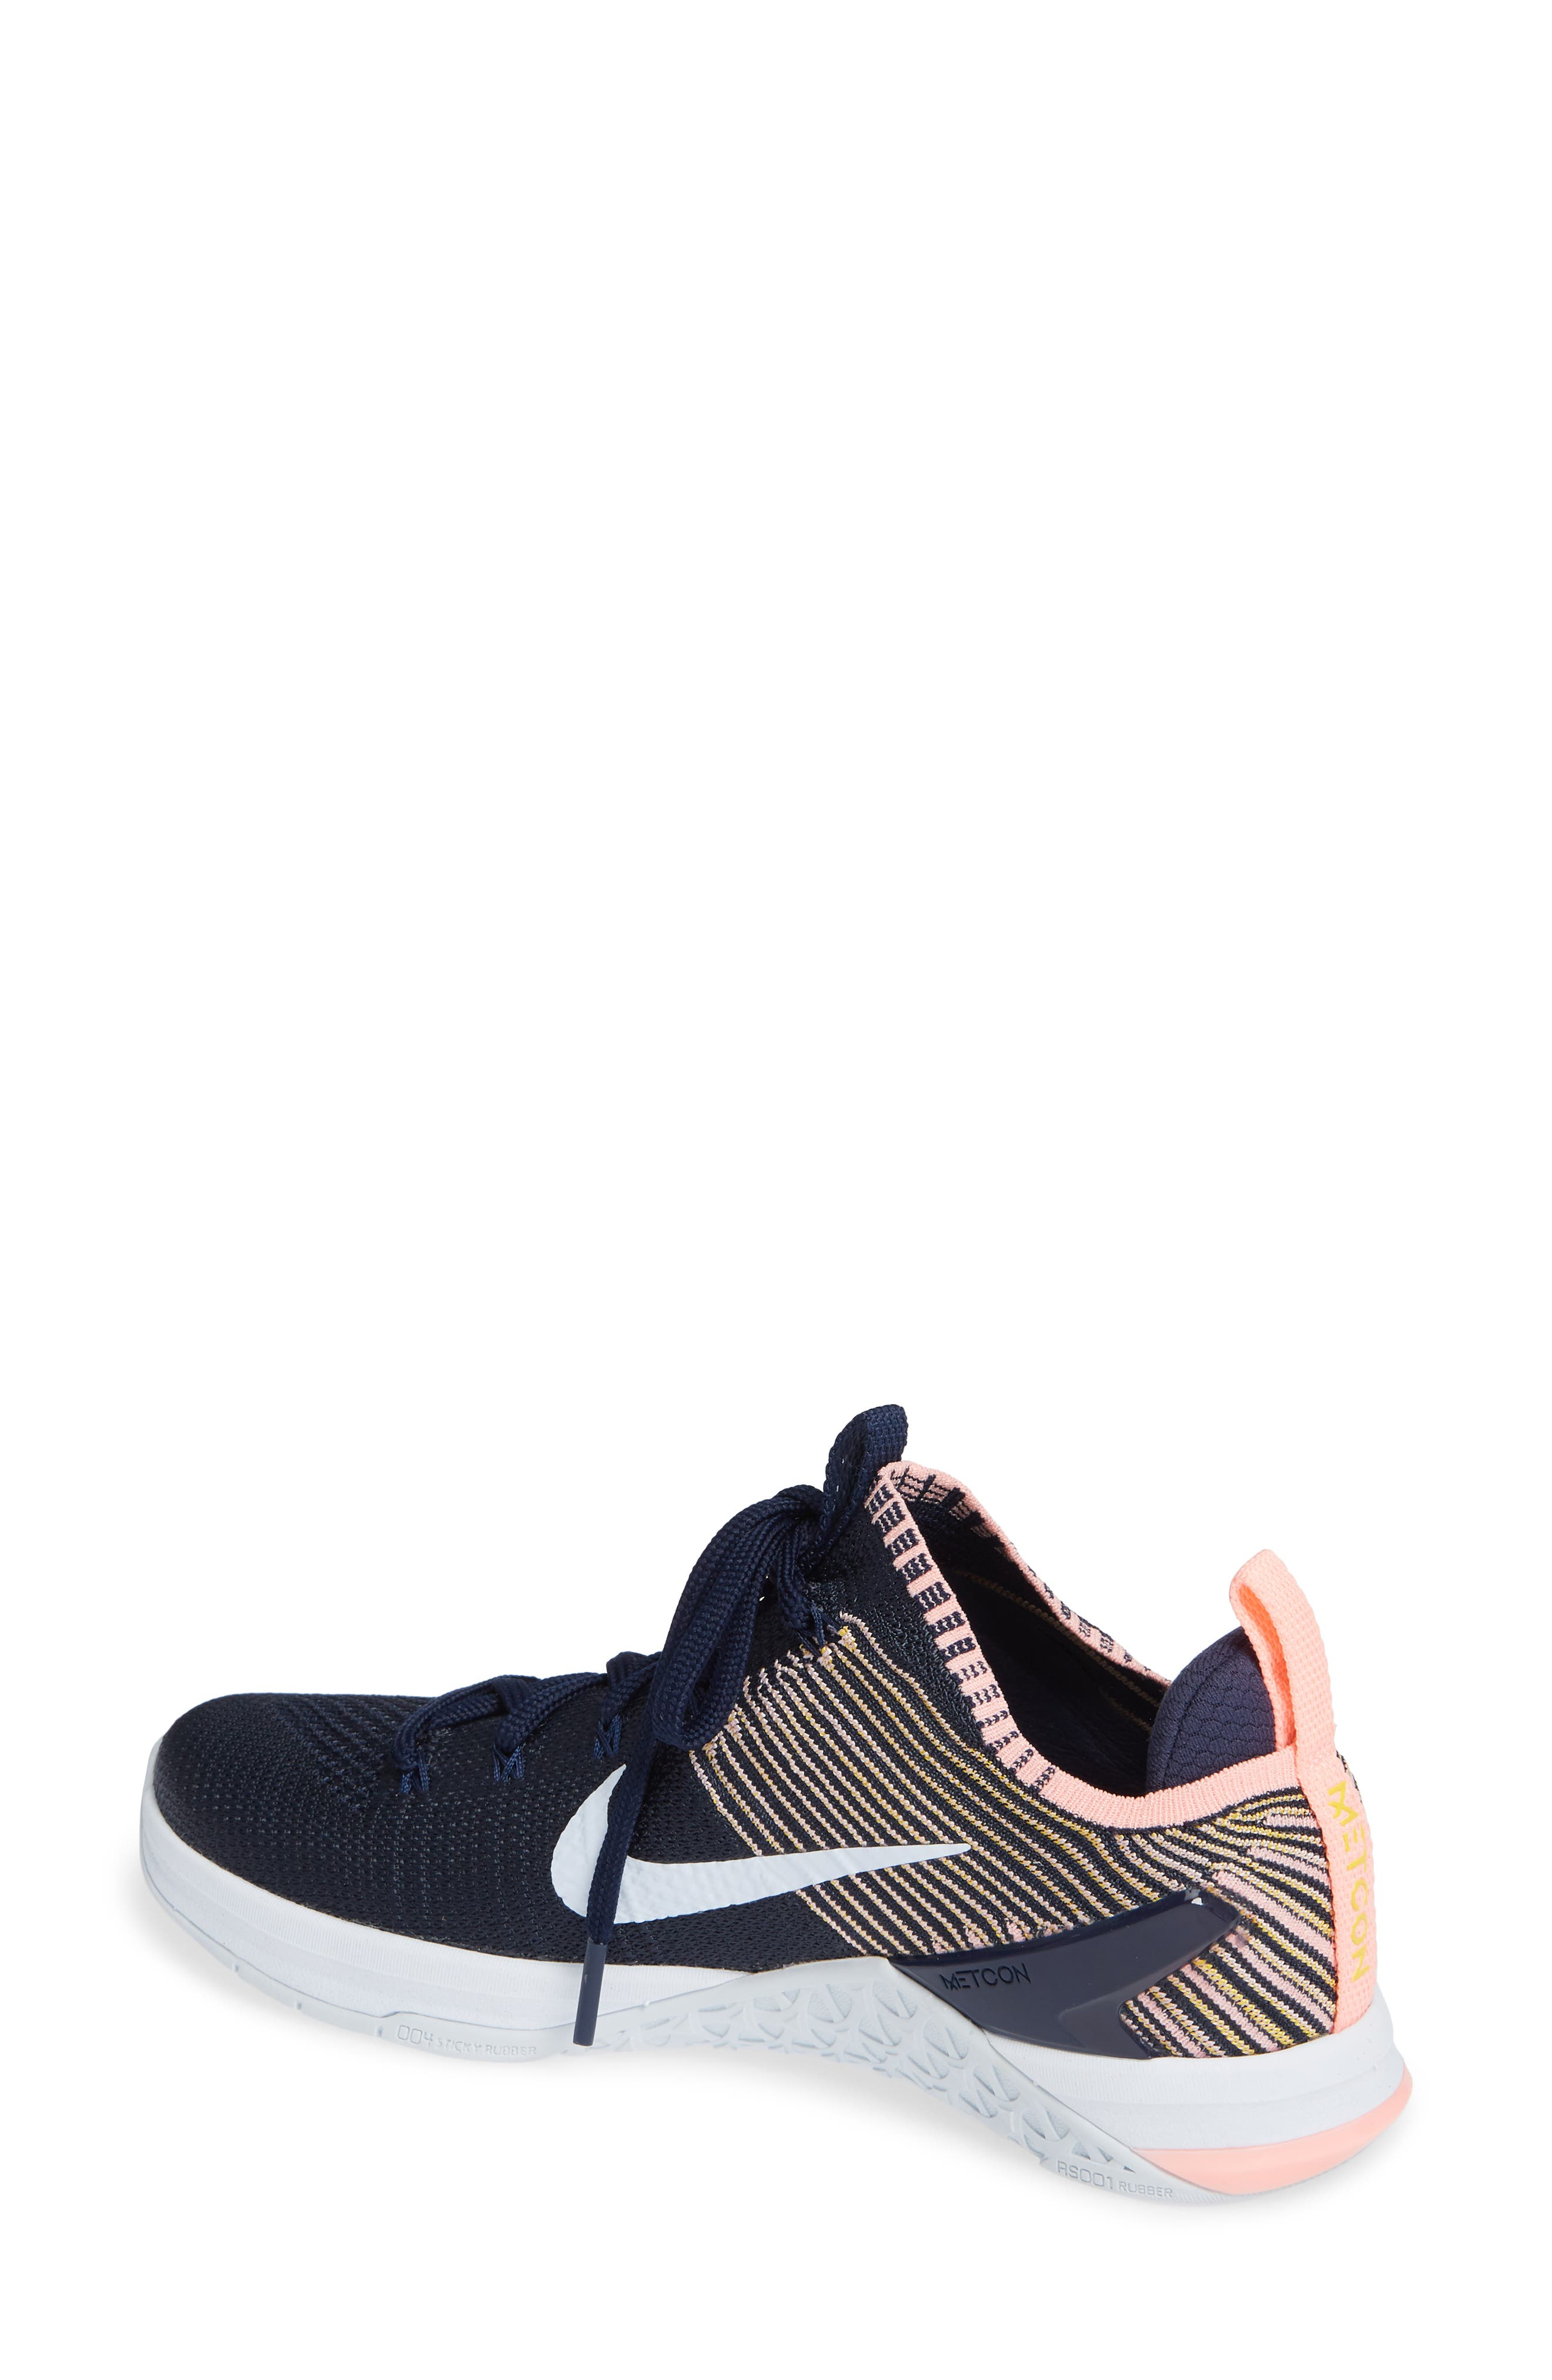 Metcon DSX Flyknit 2 Training Shoe,                             Alternate thumbnail 2, color,                             College Navy/ Blue Tint/ Pink